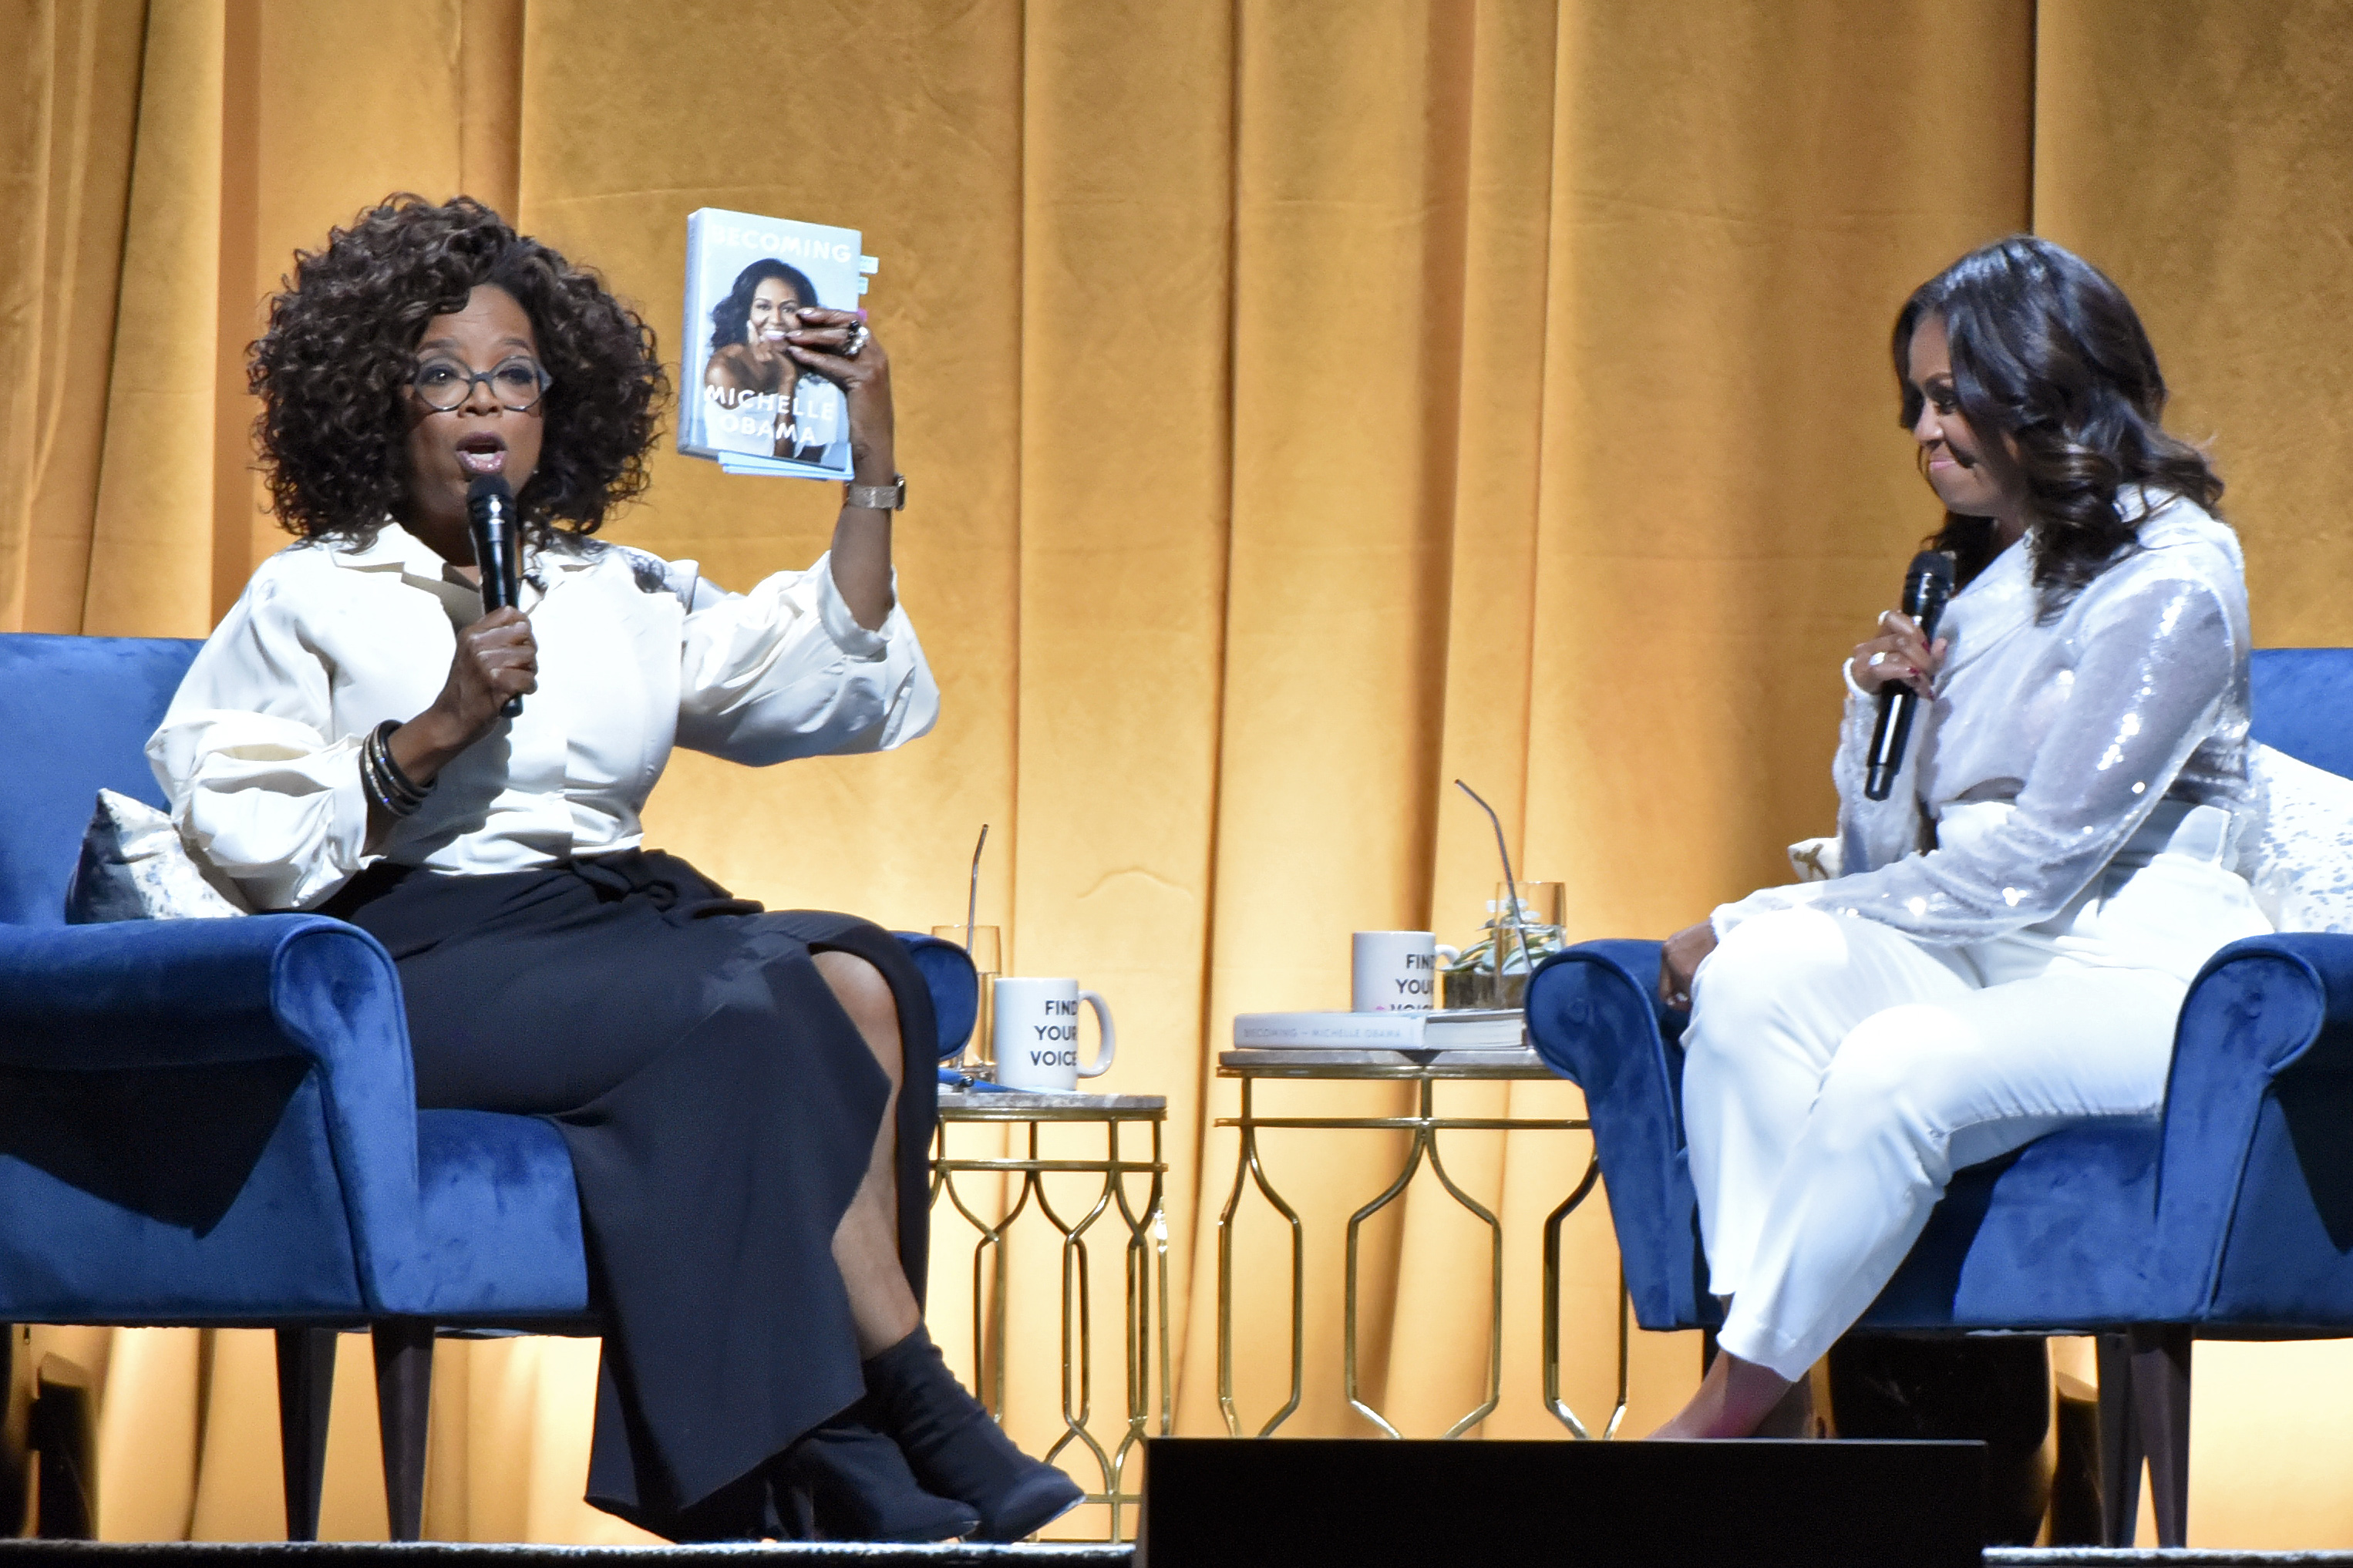 Michelle Obama's 'Becoming' book tour